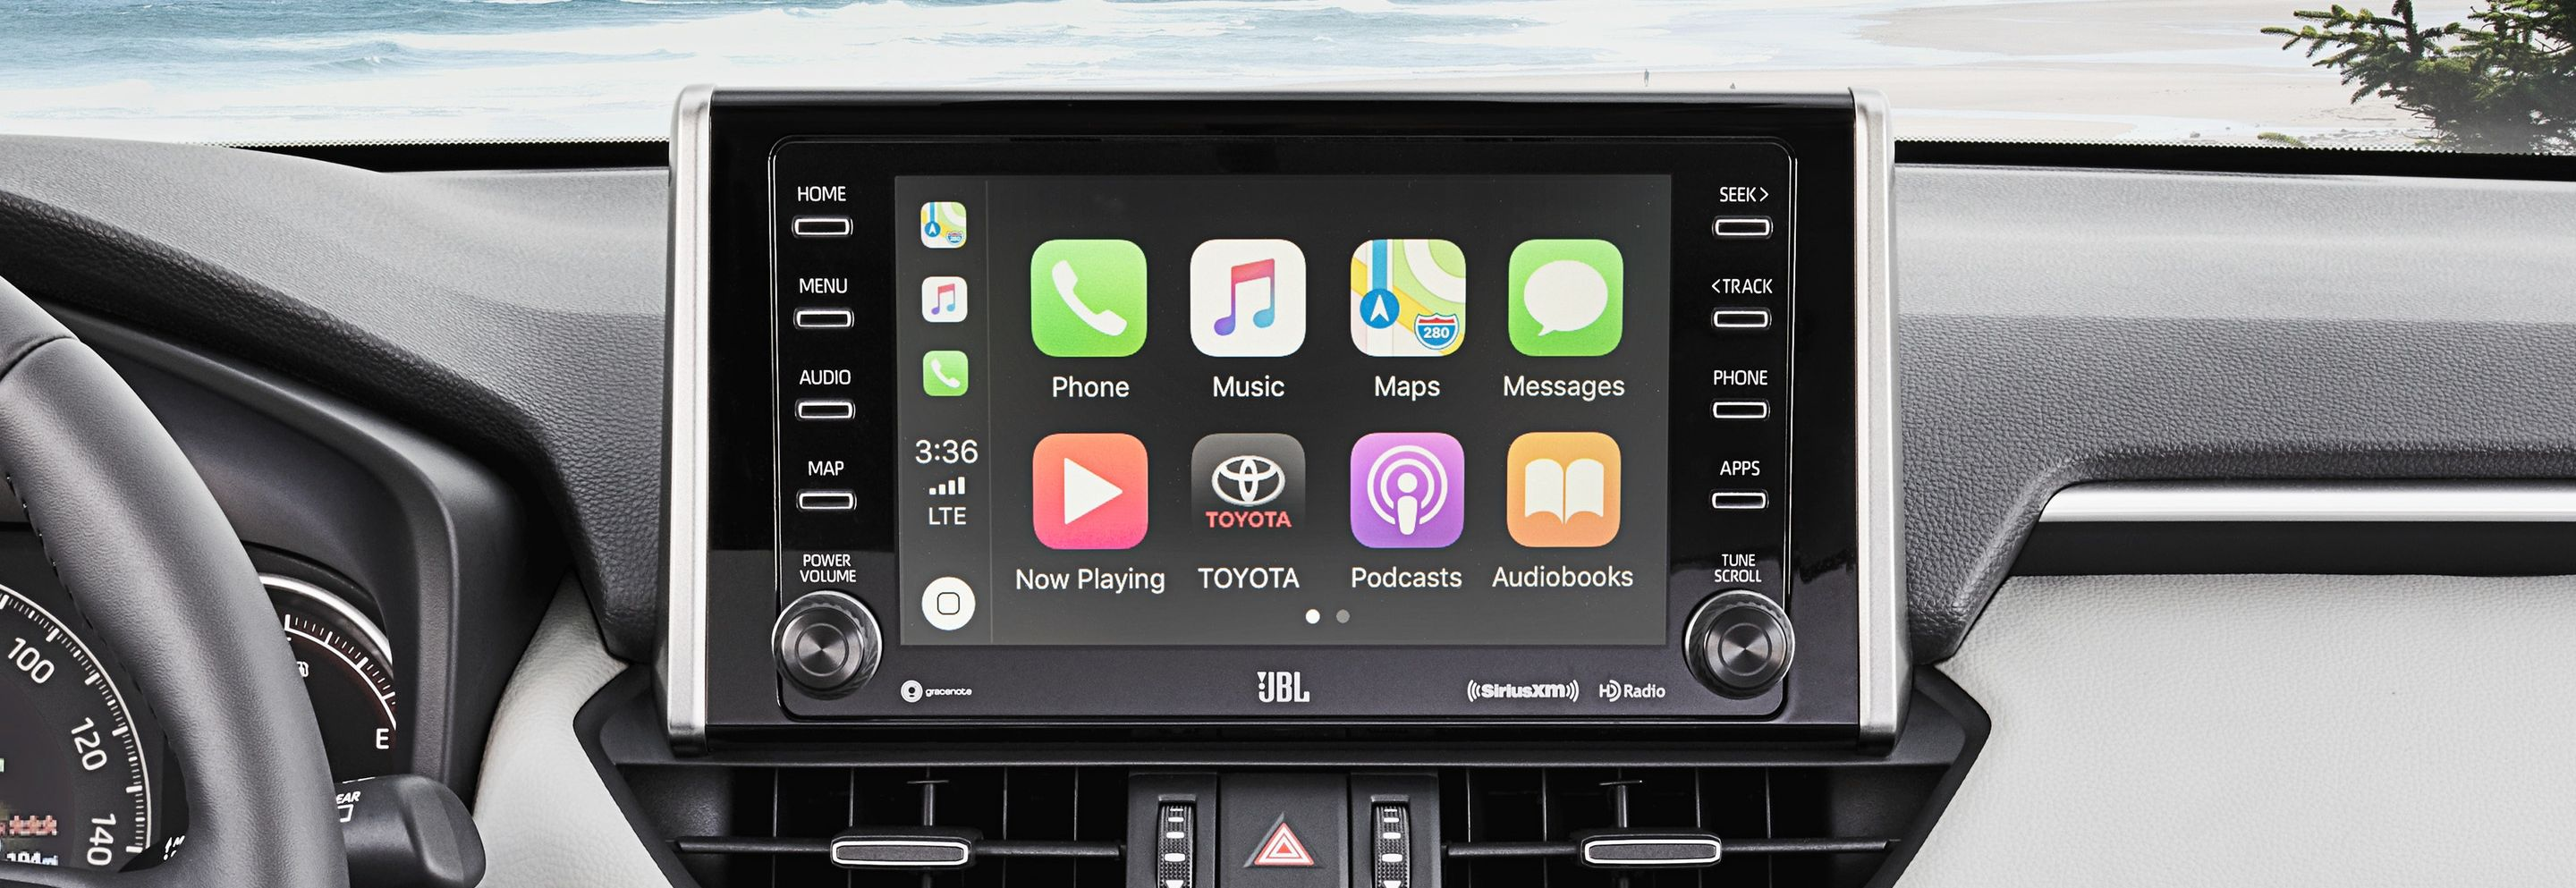 Apple CarPlay in the 2019 RAV4